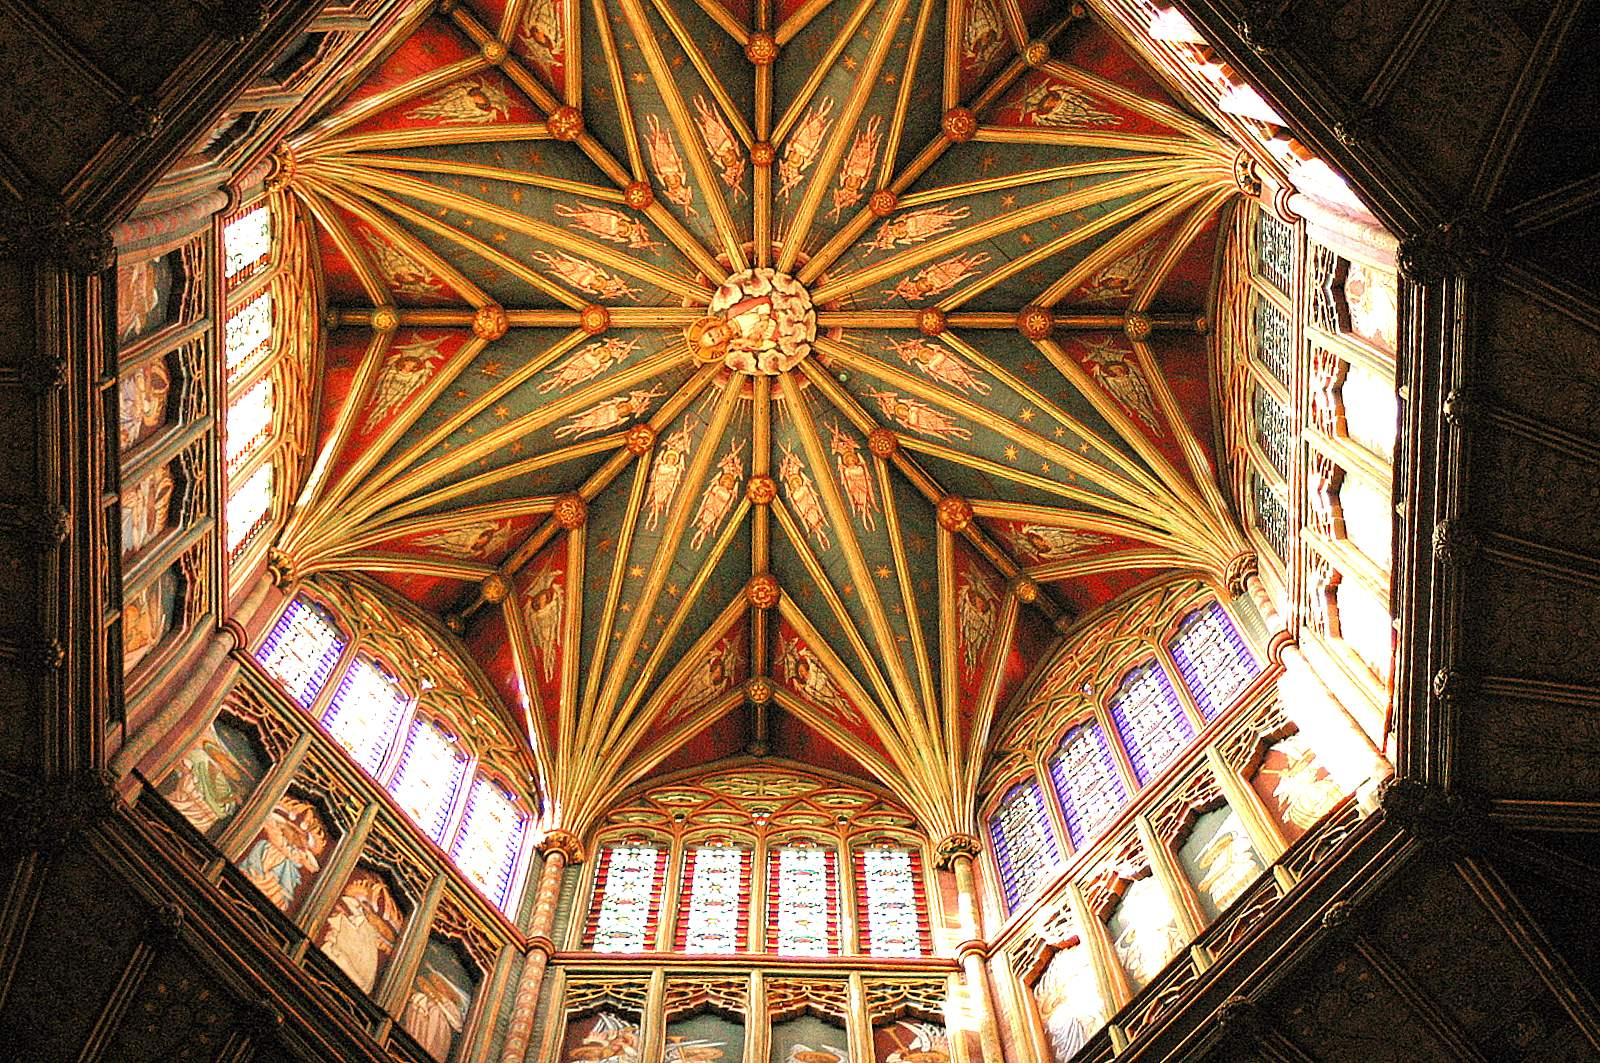 [The+lantern+roof+Ely+cathedral.jpg]